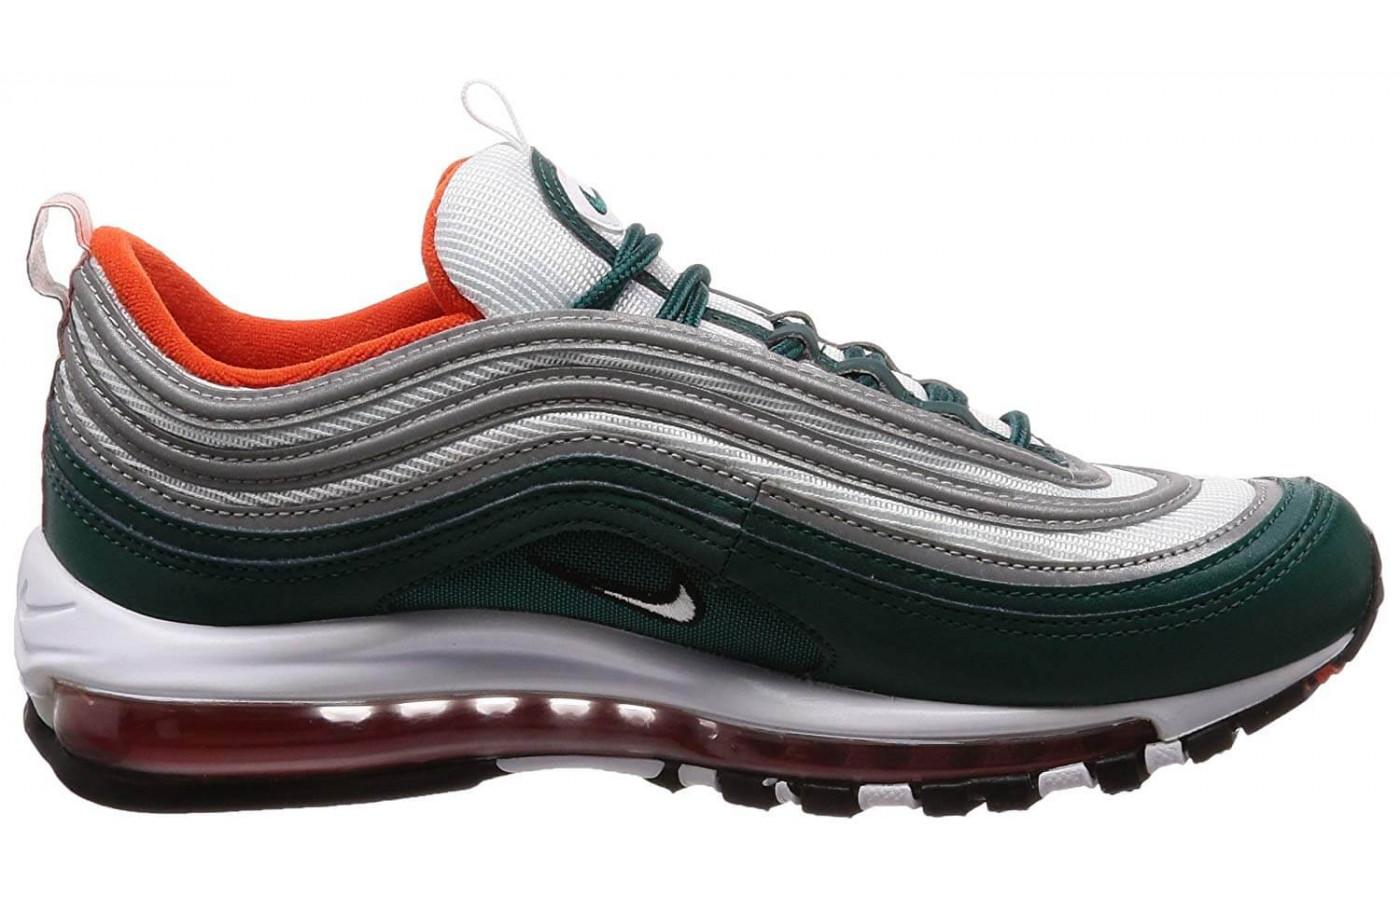 new arrival 5c08d c50b6 The Air Max  The Air Max 97 features Air Max cushioning throughout the  length of the foot ...